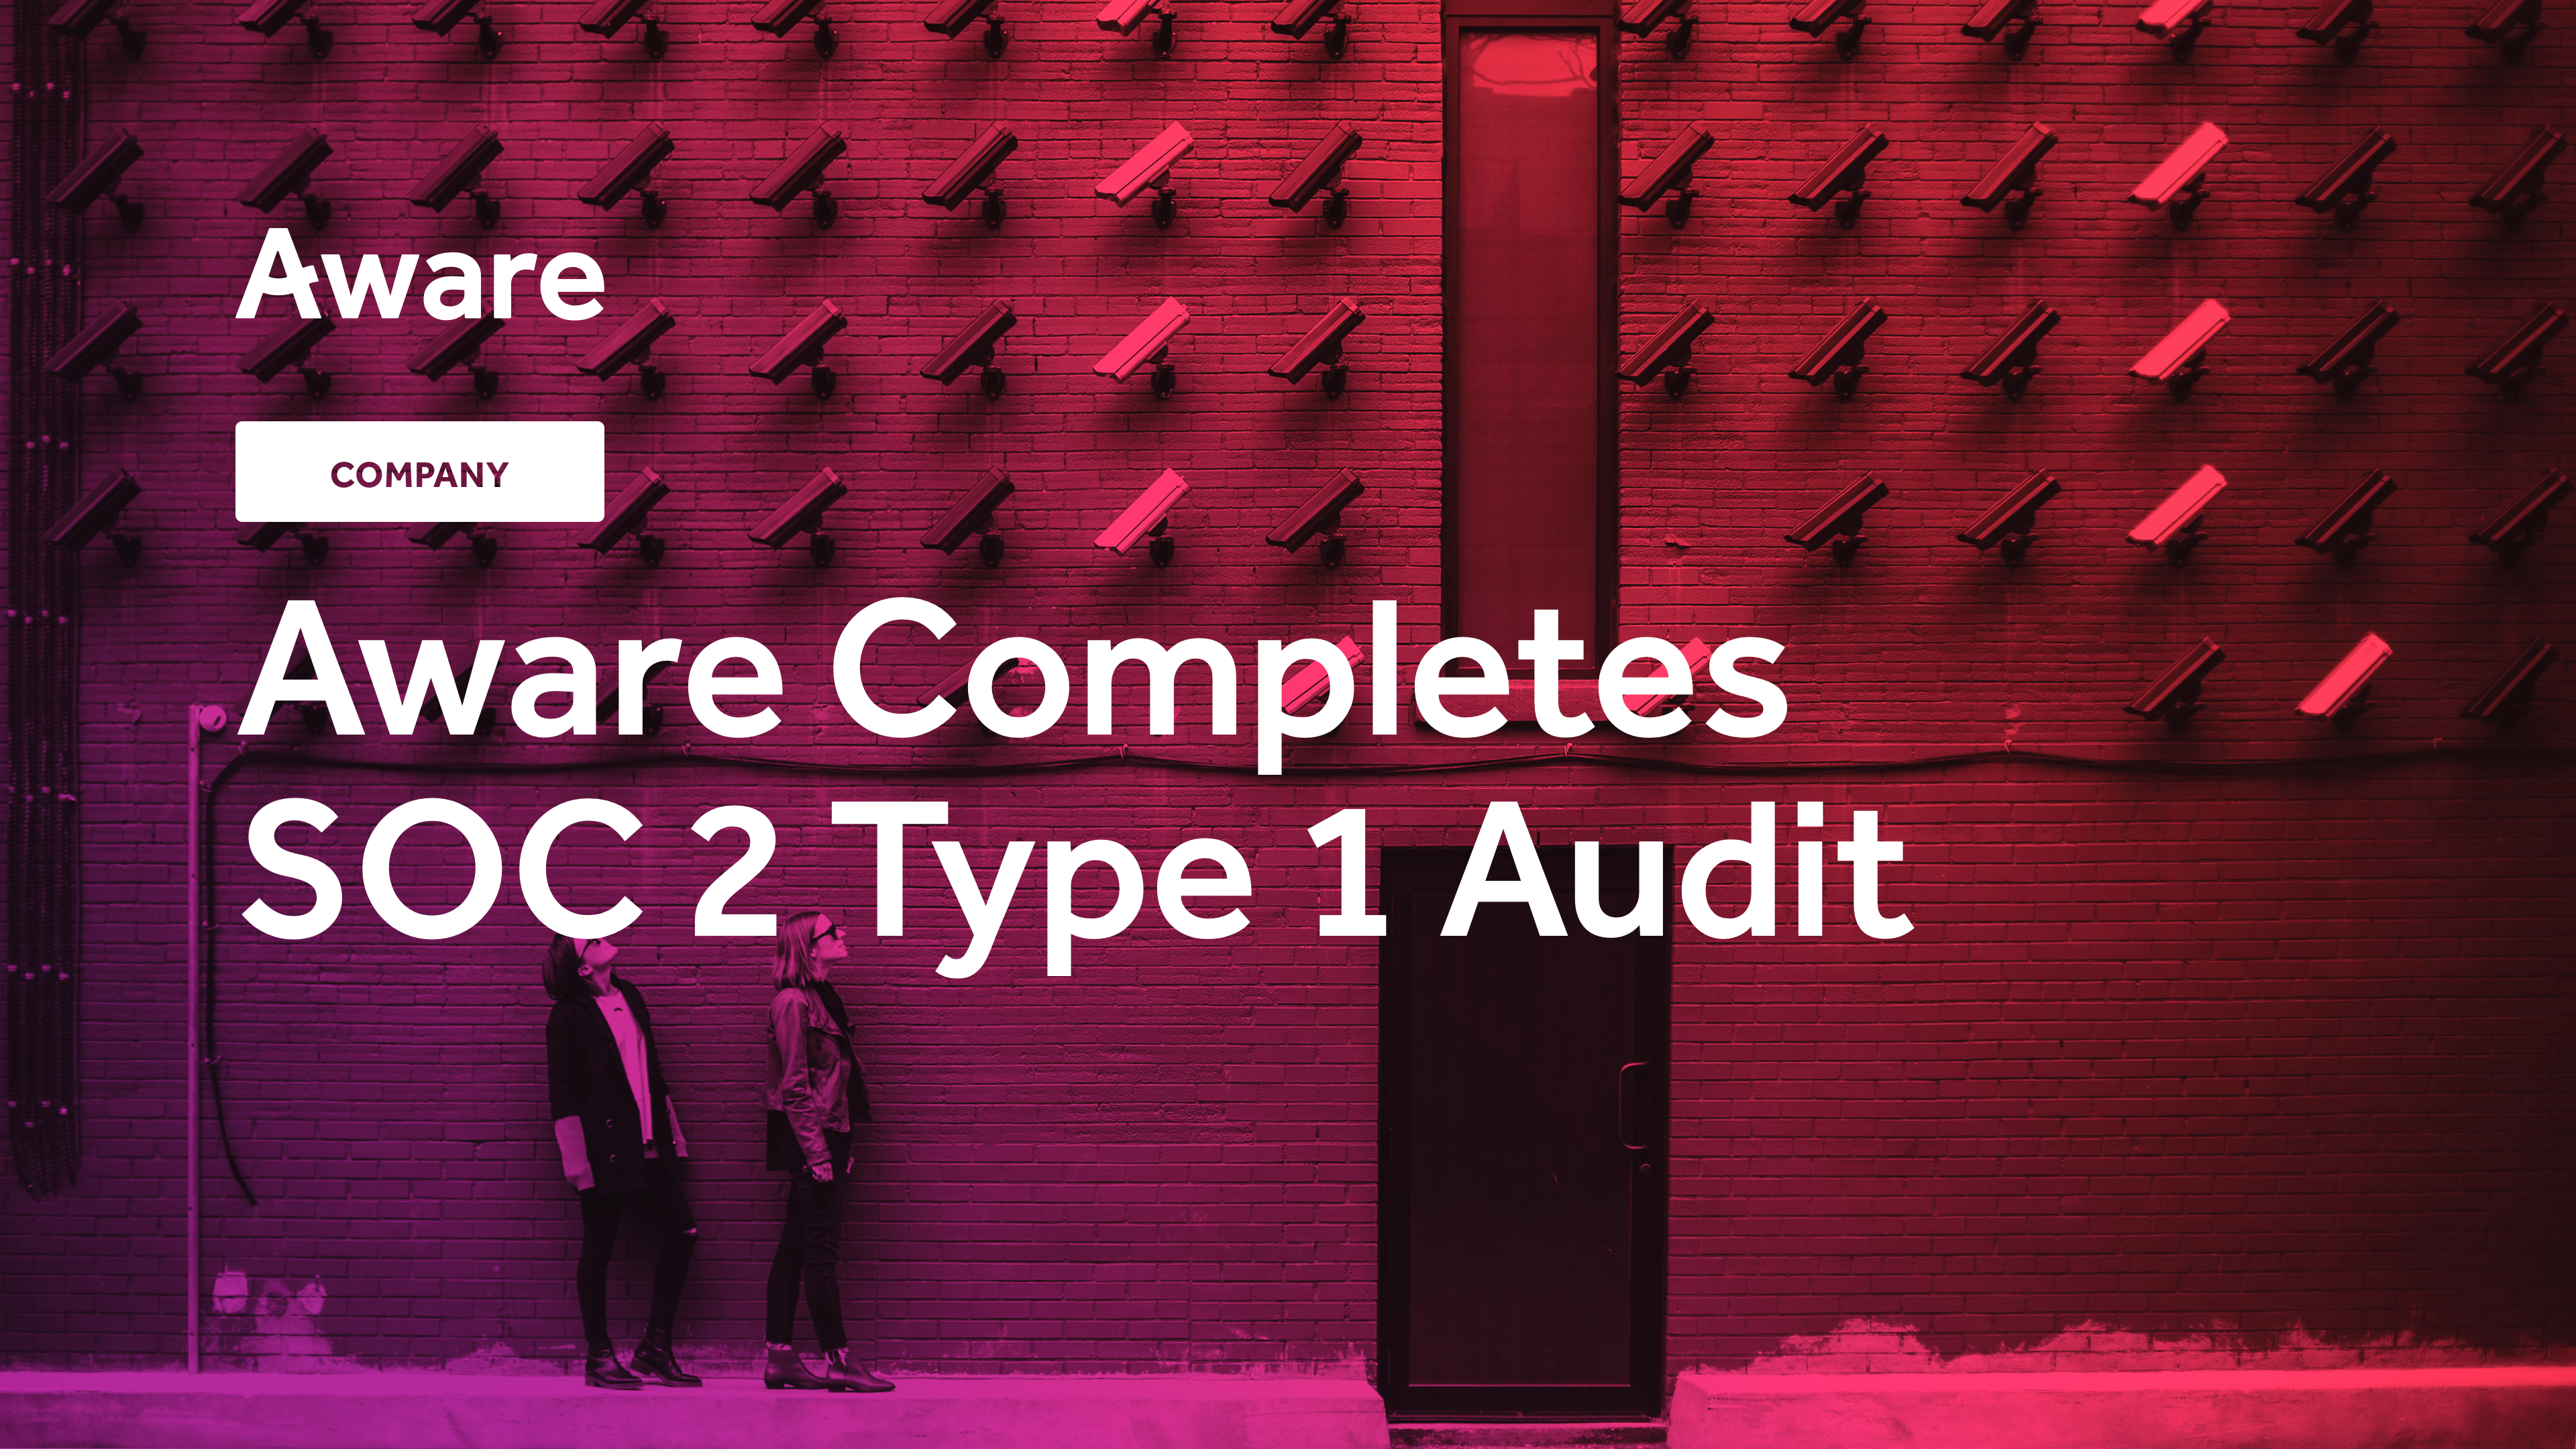 Aware Completes SOC 2 Type 1 Audit